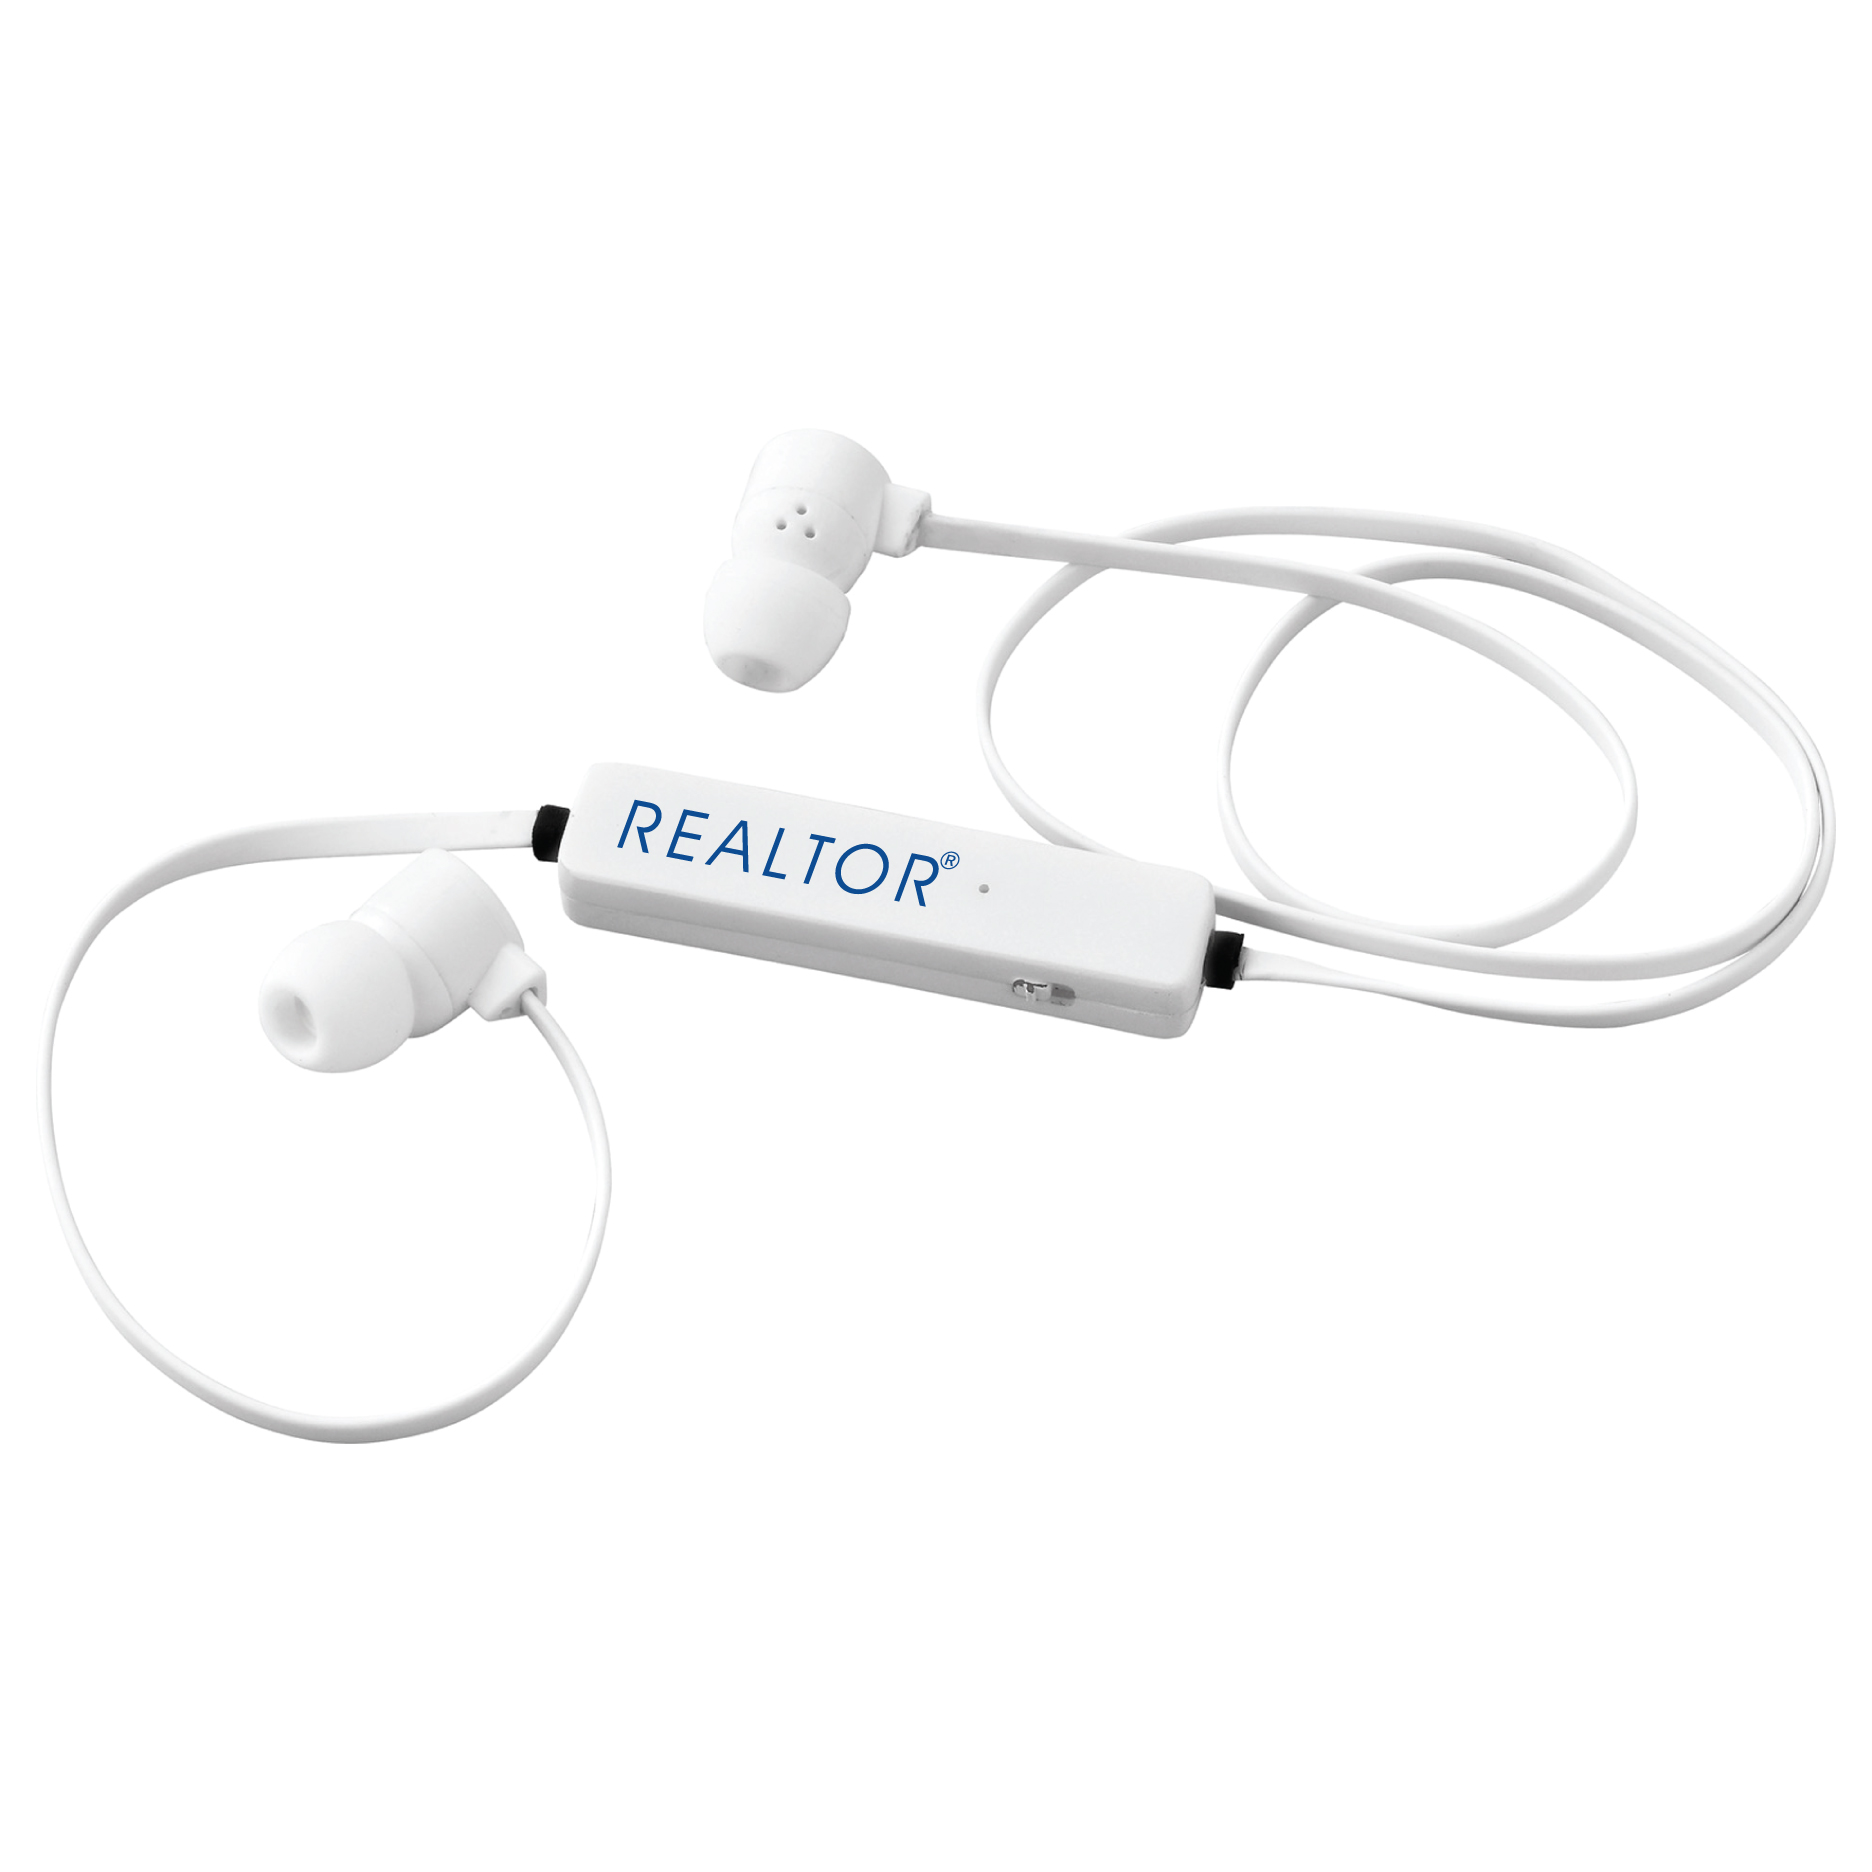 Bluetooth Earbuds Bluetooths,Earbuds,Earbudz,Headphones,Speakers,Musics,Heads,Phones,